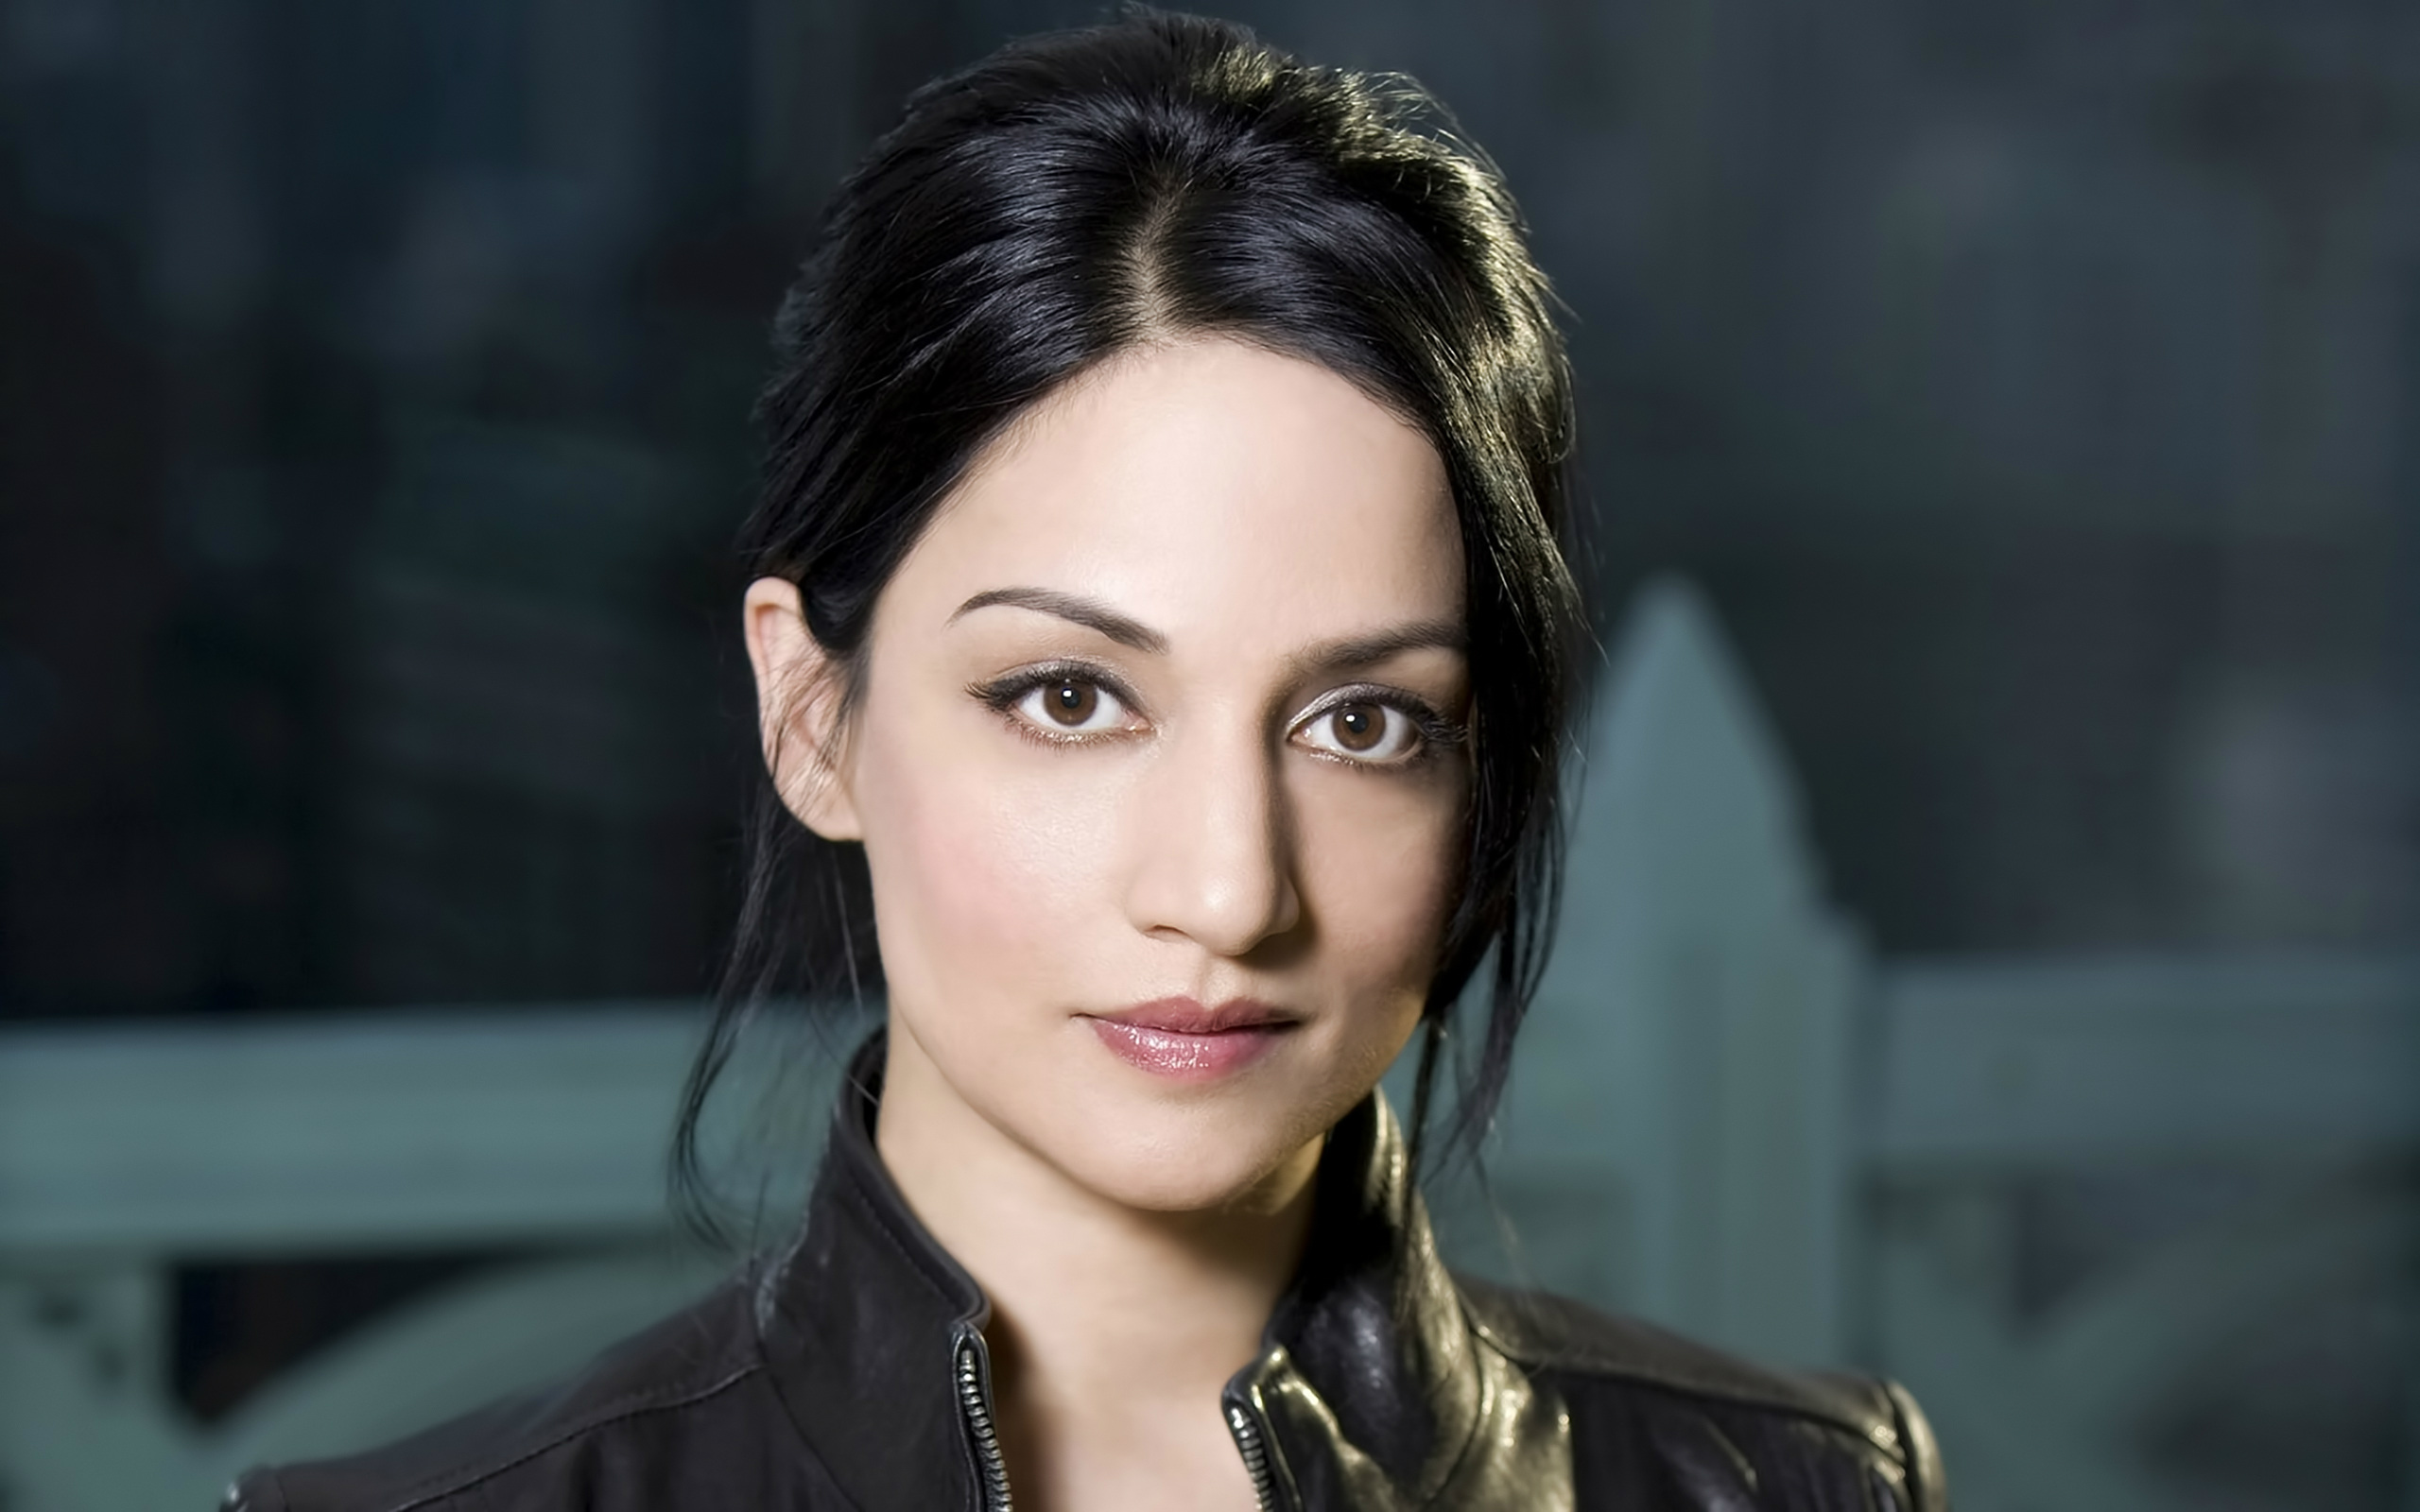 archie panjabi 4k widescreen desktop wallpaper 1131